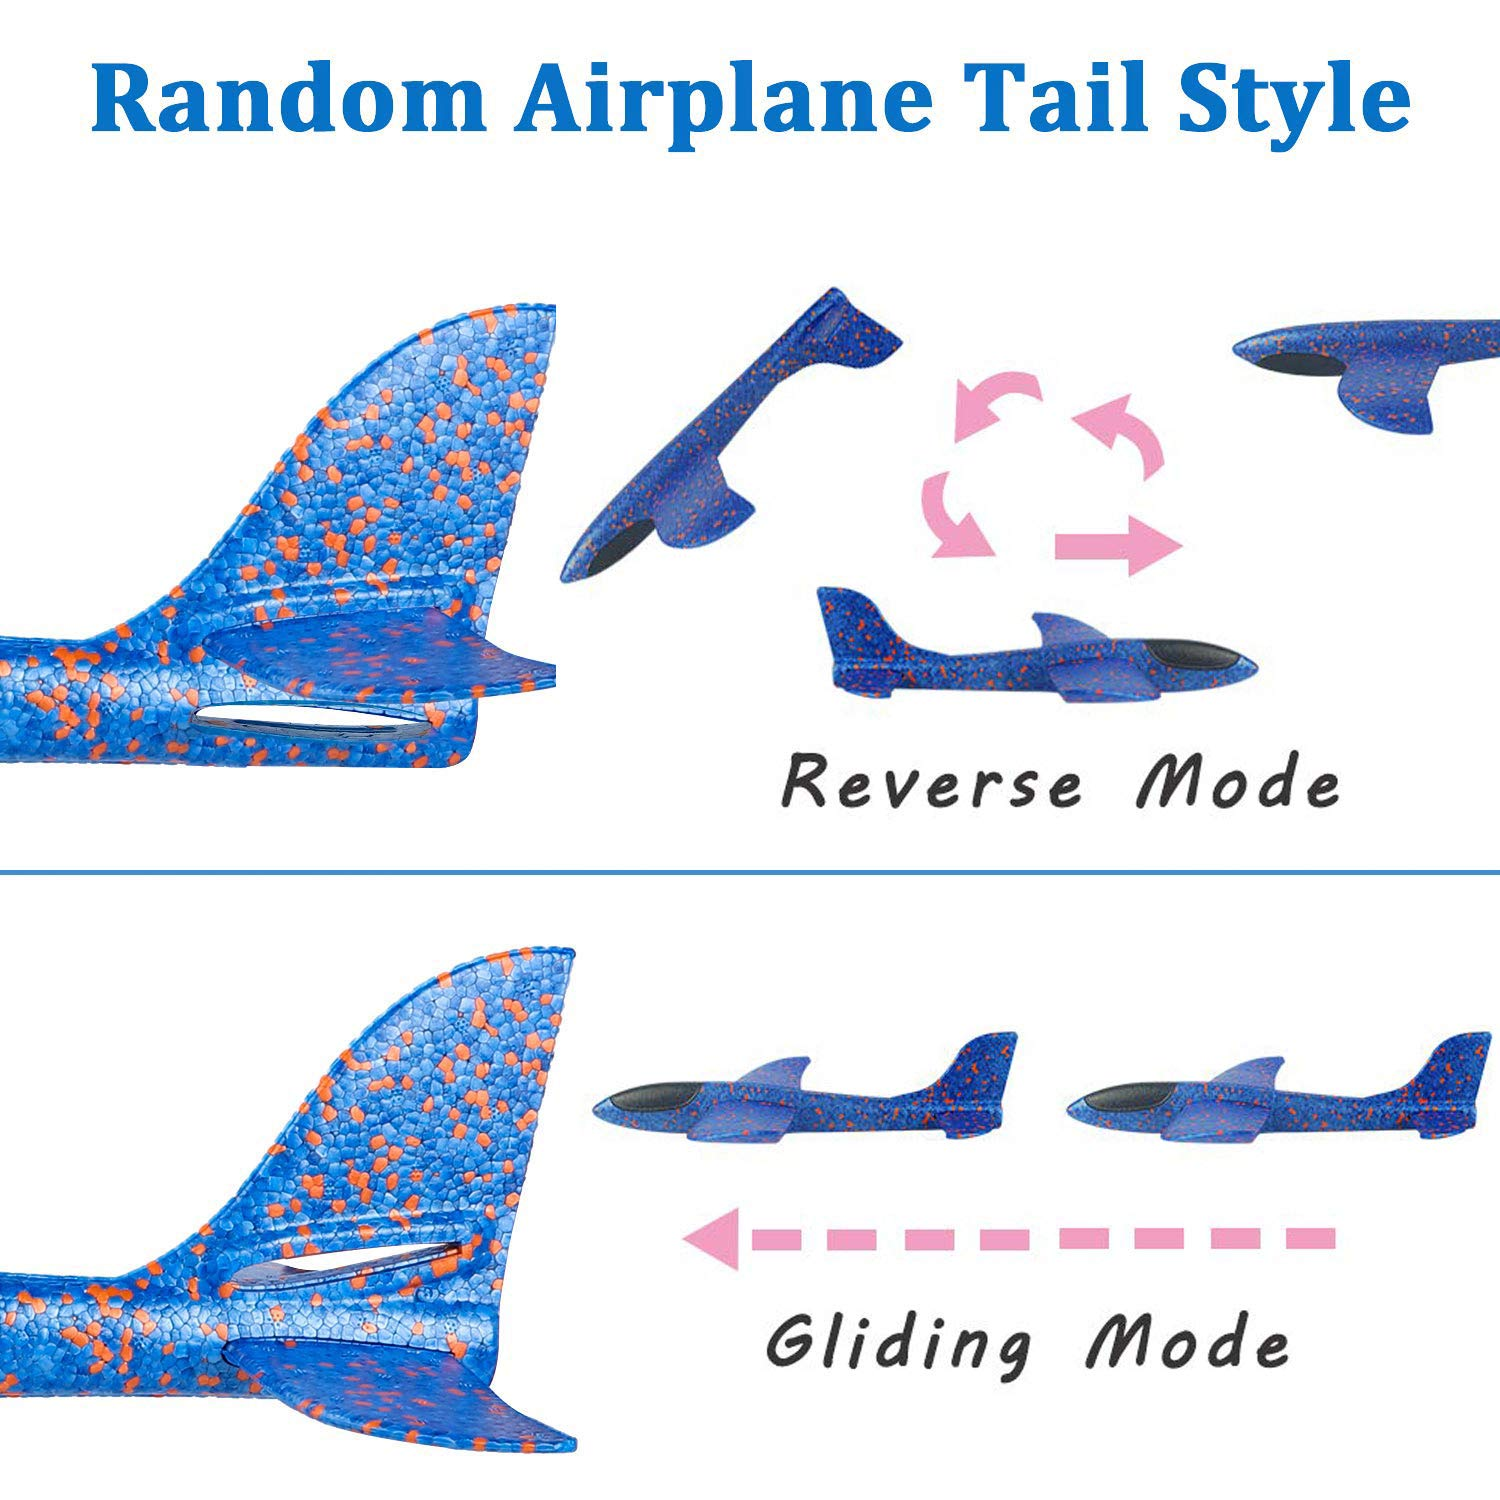 7 Pack Toy Airplane Glider for Kids, 2P 13.5'' Inch Throwing Foam Plane Kit Aircraft Jet+5P Toy Parachute Tangle Free Throwing, Outdoor Sports Flying Toys for Boys Girls Toddlers Teens Birthday Gift by iGeeKid (Image #5)